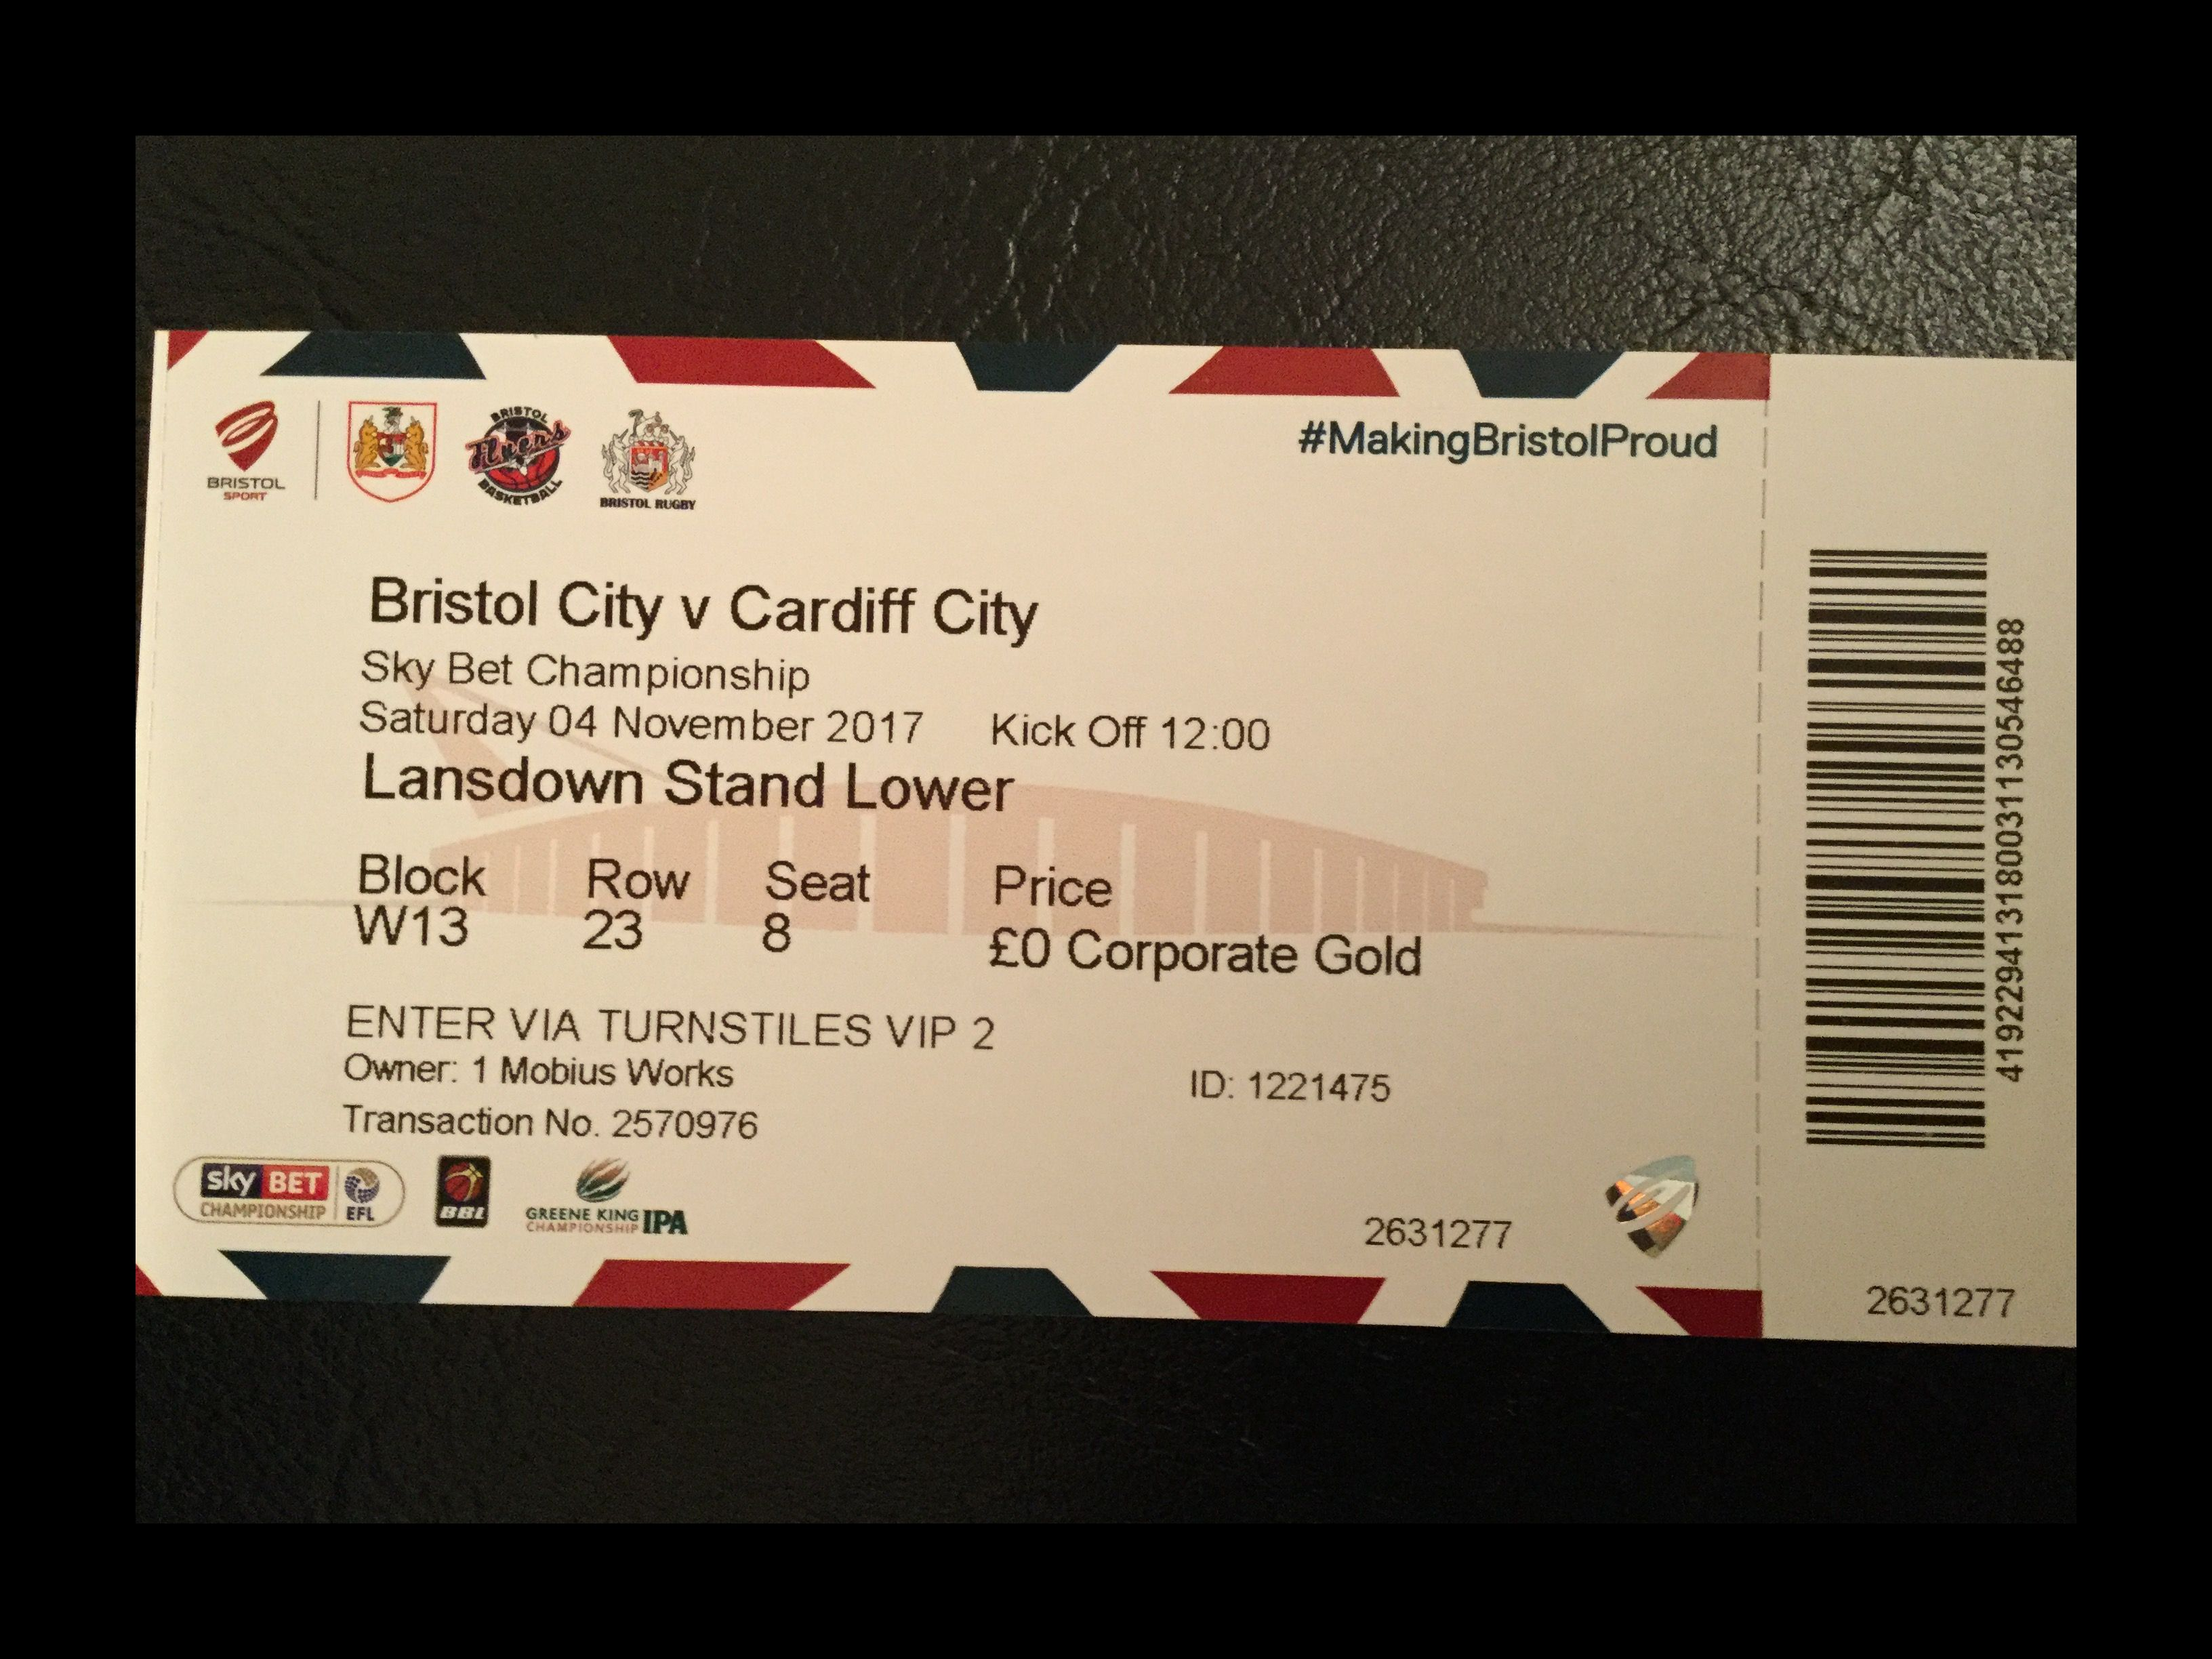 Bristol City v Cardiff City 04-11-2017 Ticket